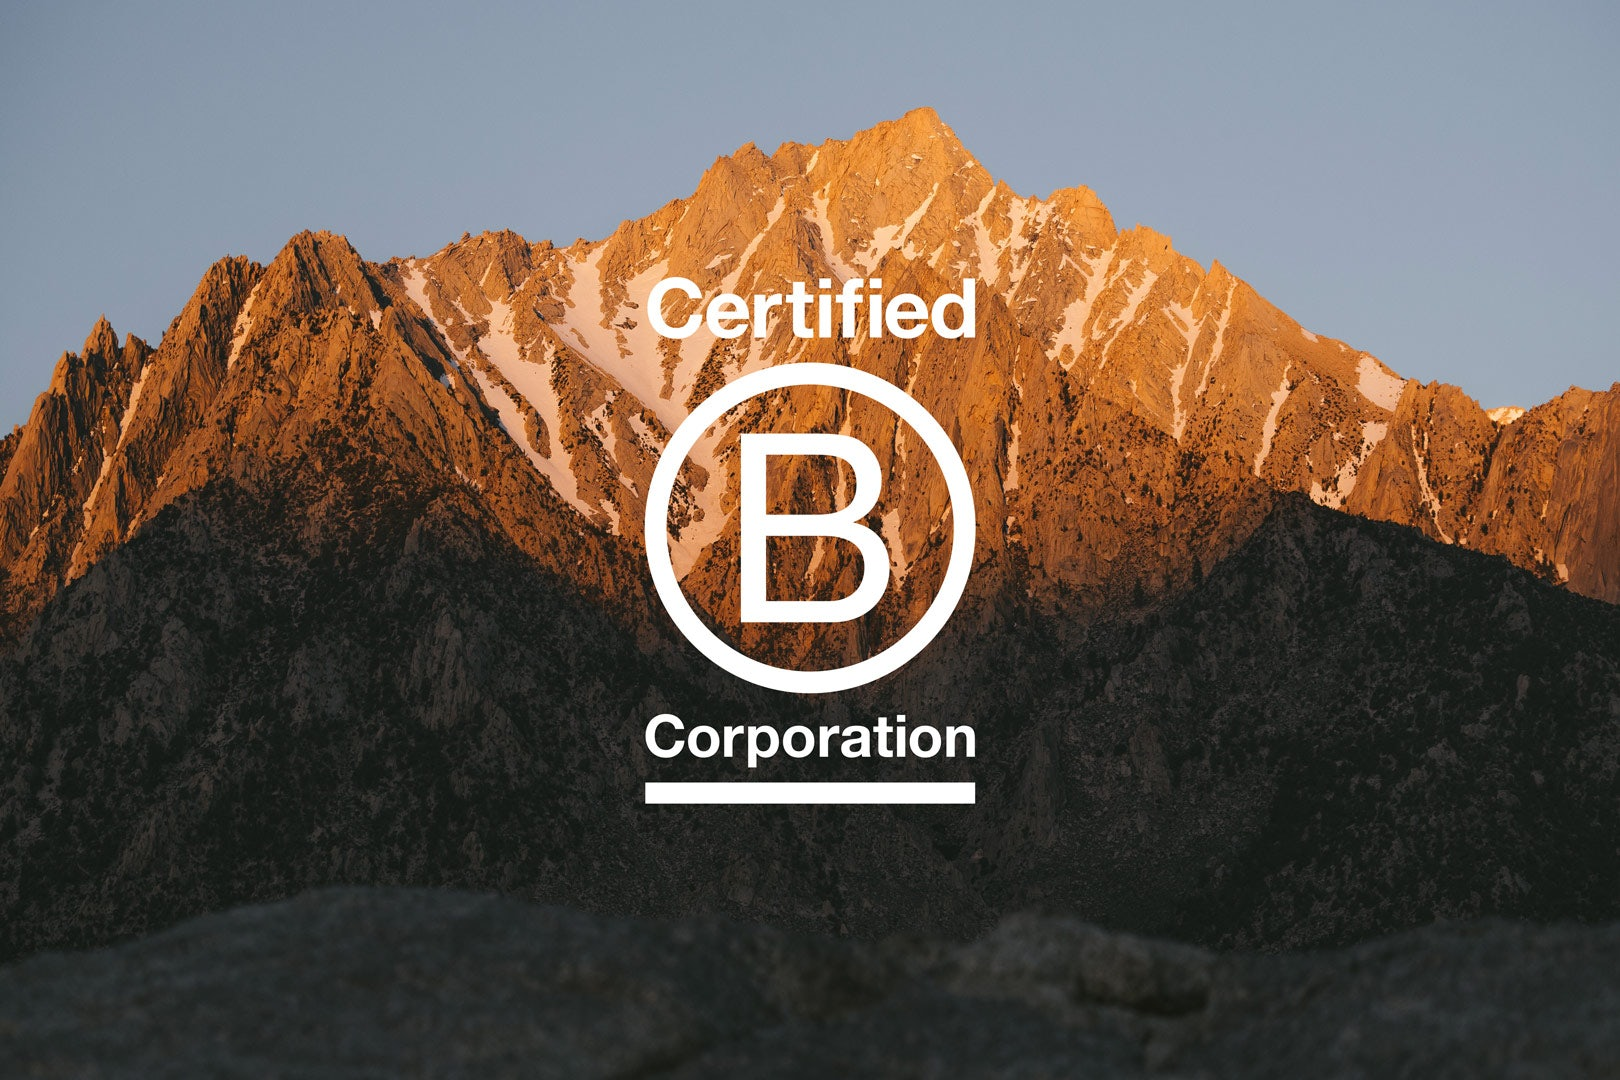 Tillak - Certified B Corporation®